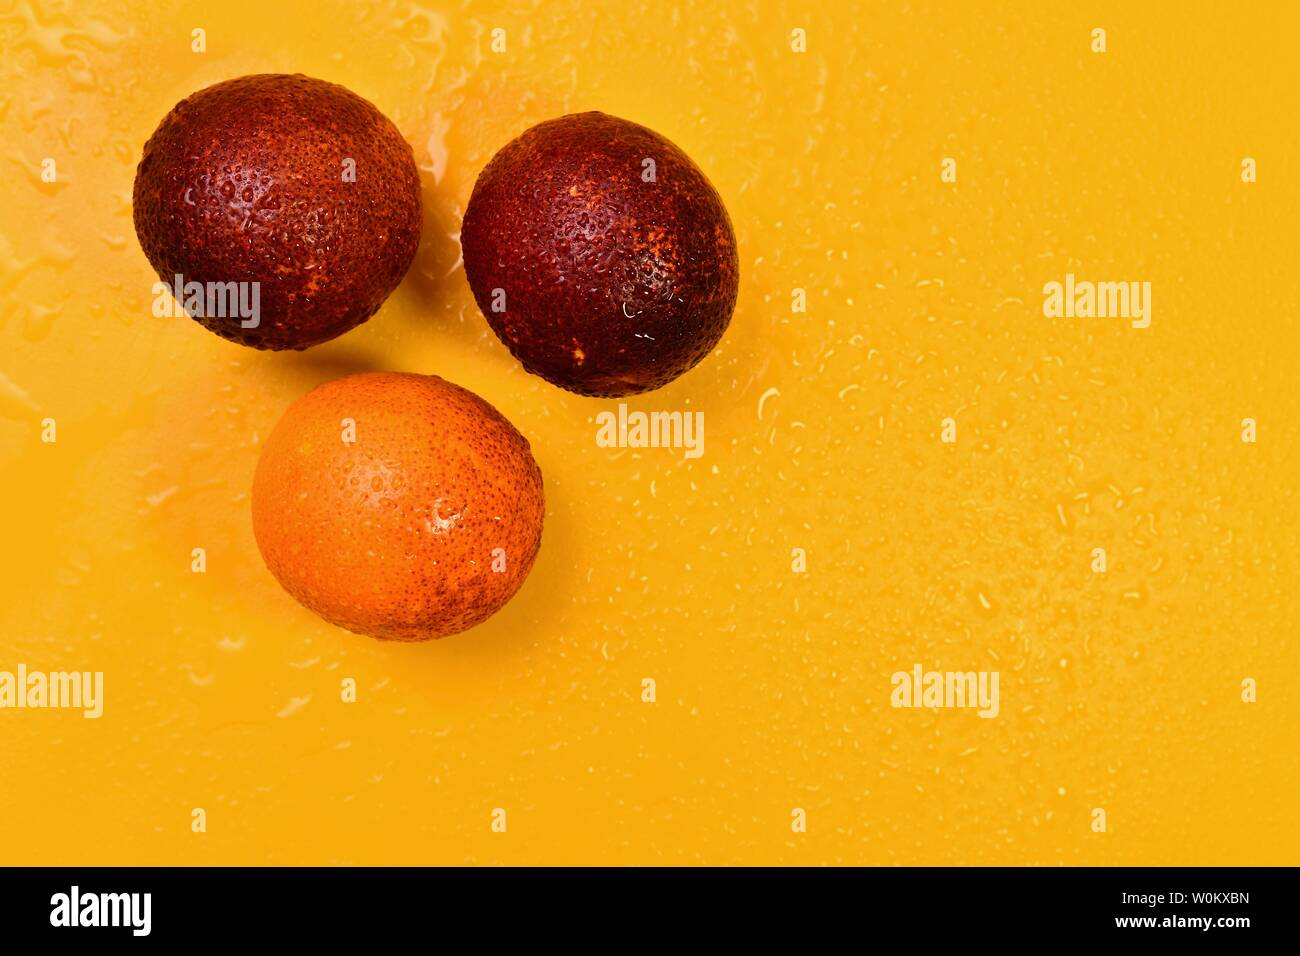 Three red oranges on a yellow sunny background on the left. On fruit and water drops background. - Stock Image